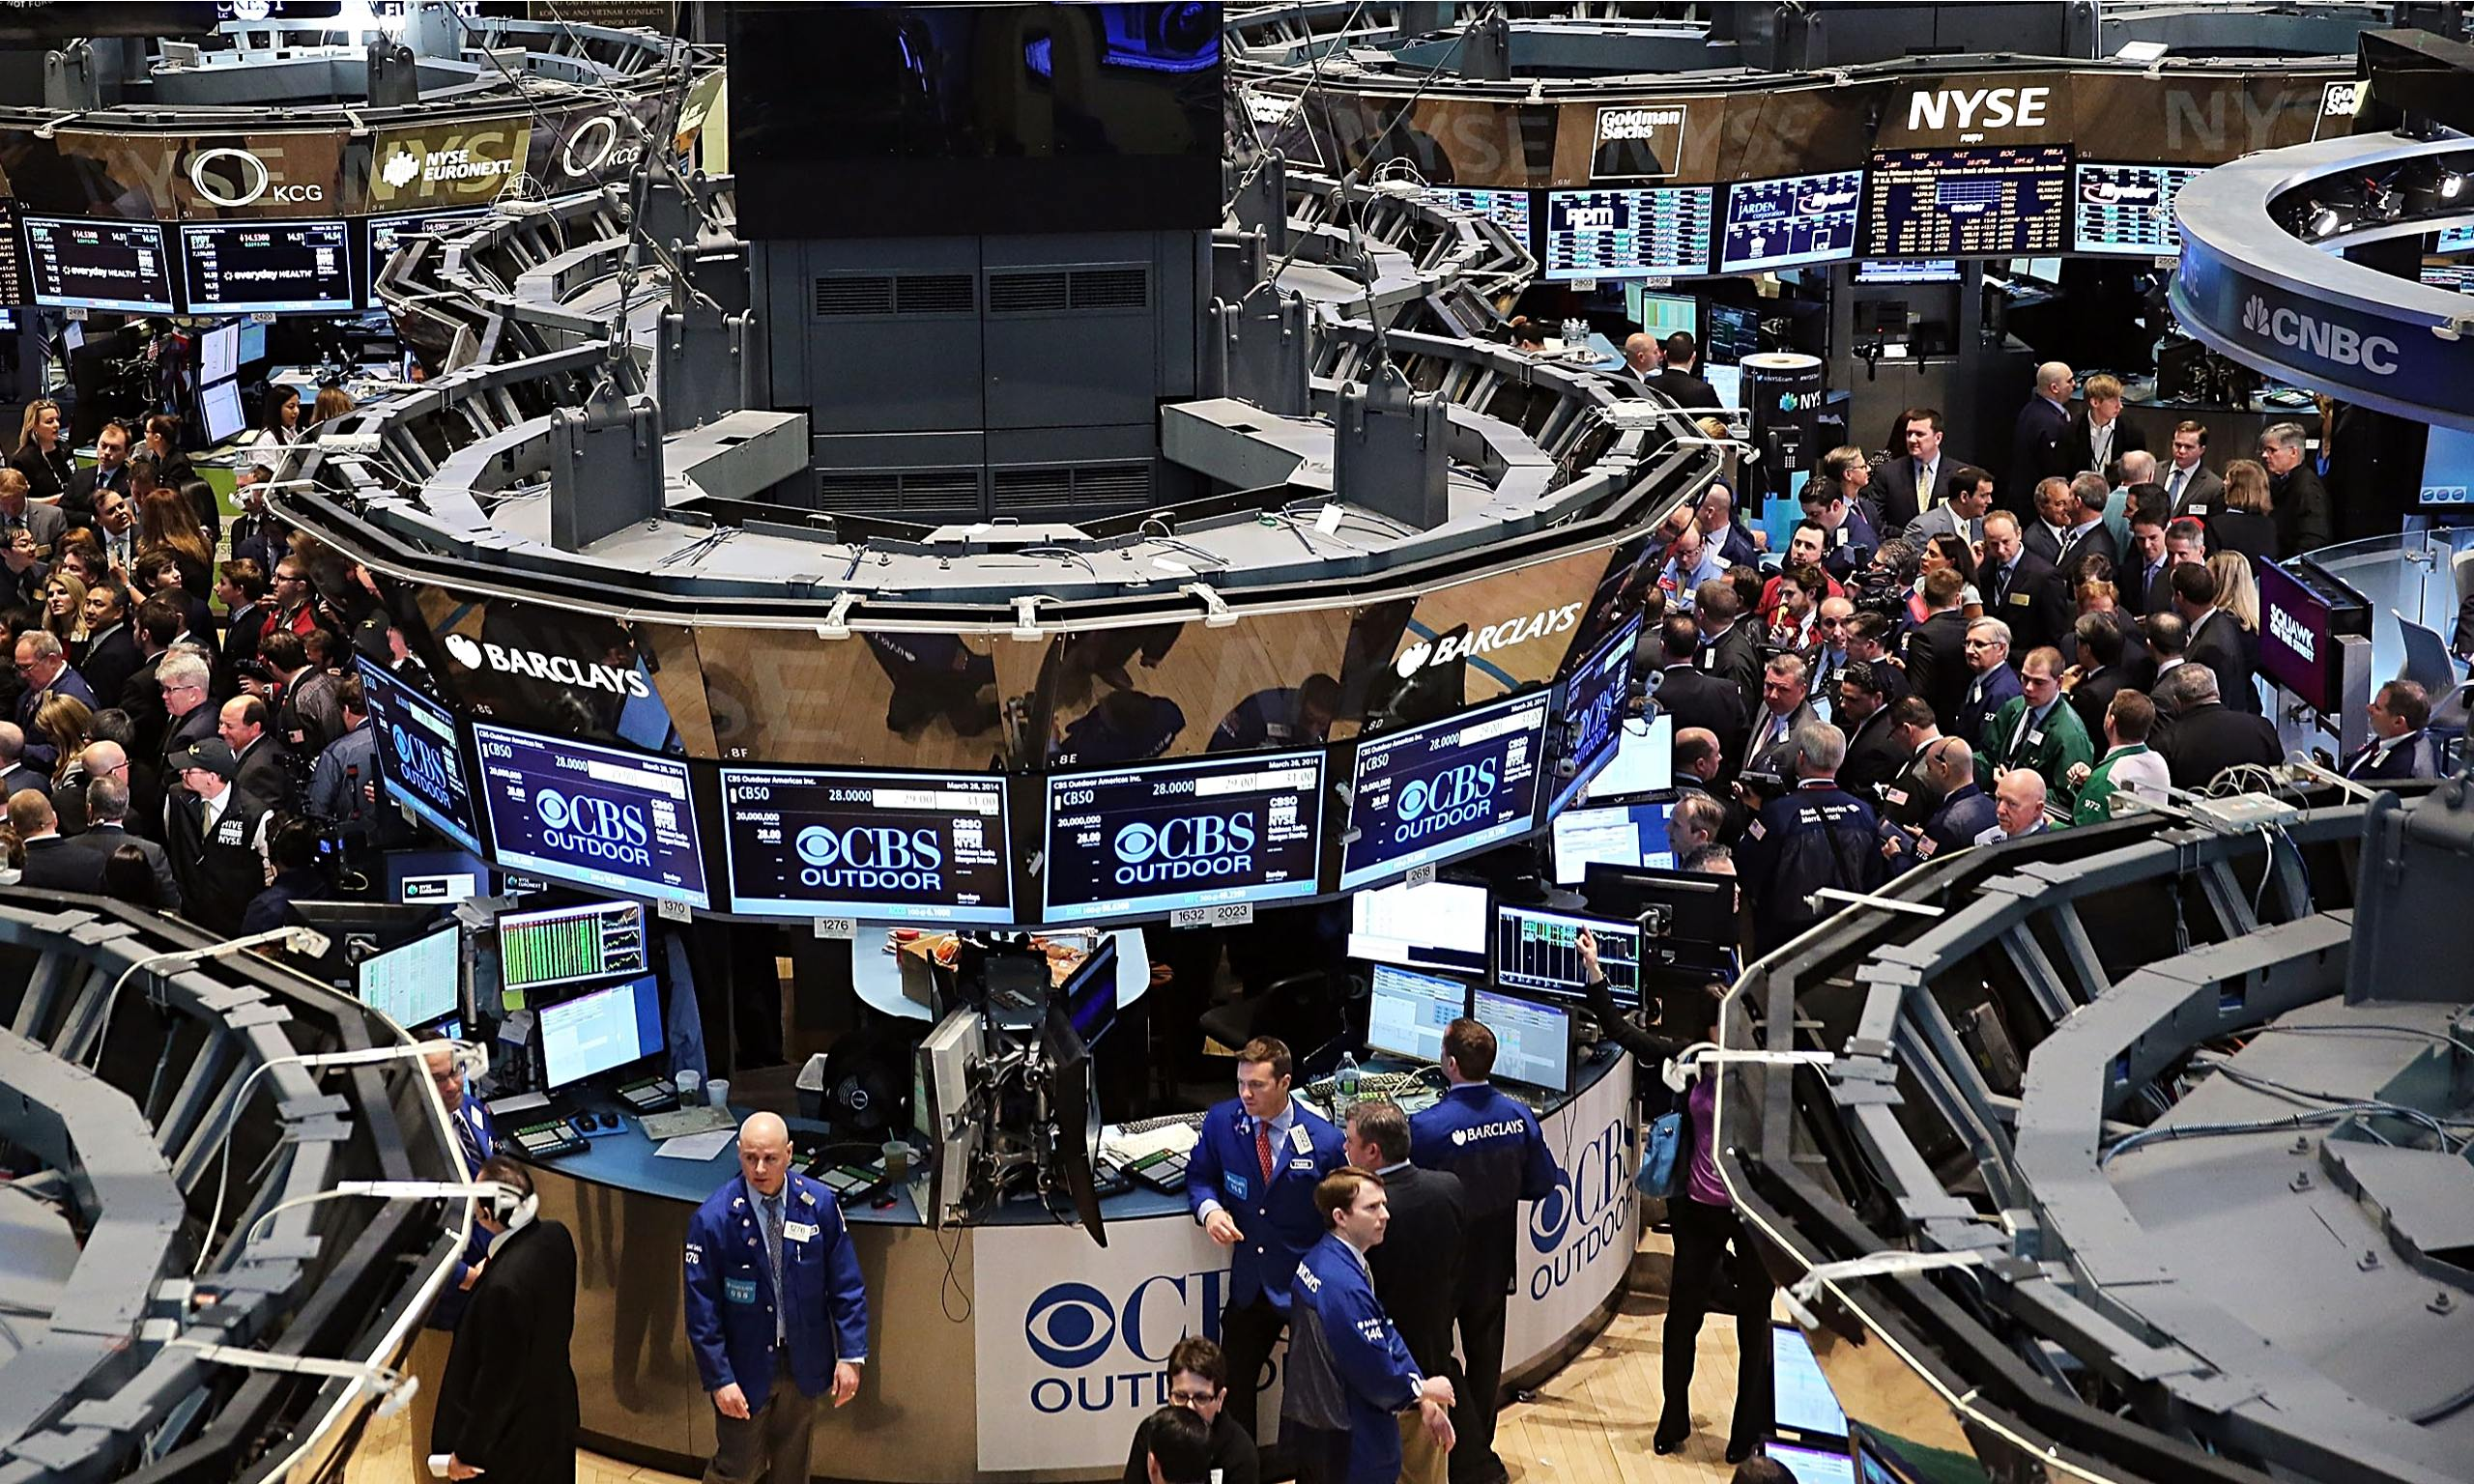 High Frequency Trading Enough To Get Goldman Sachs